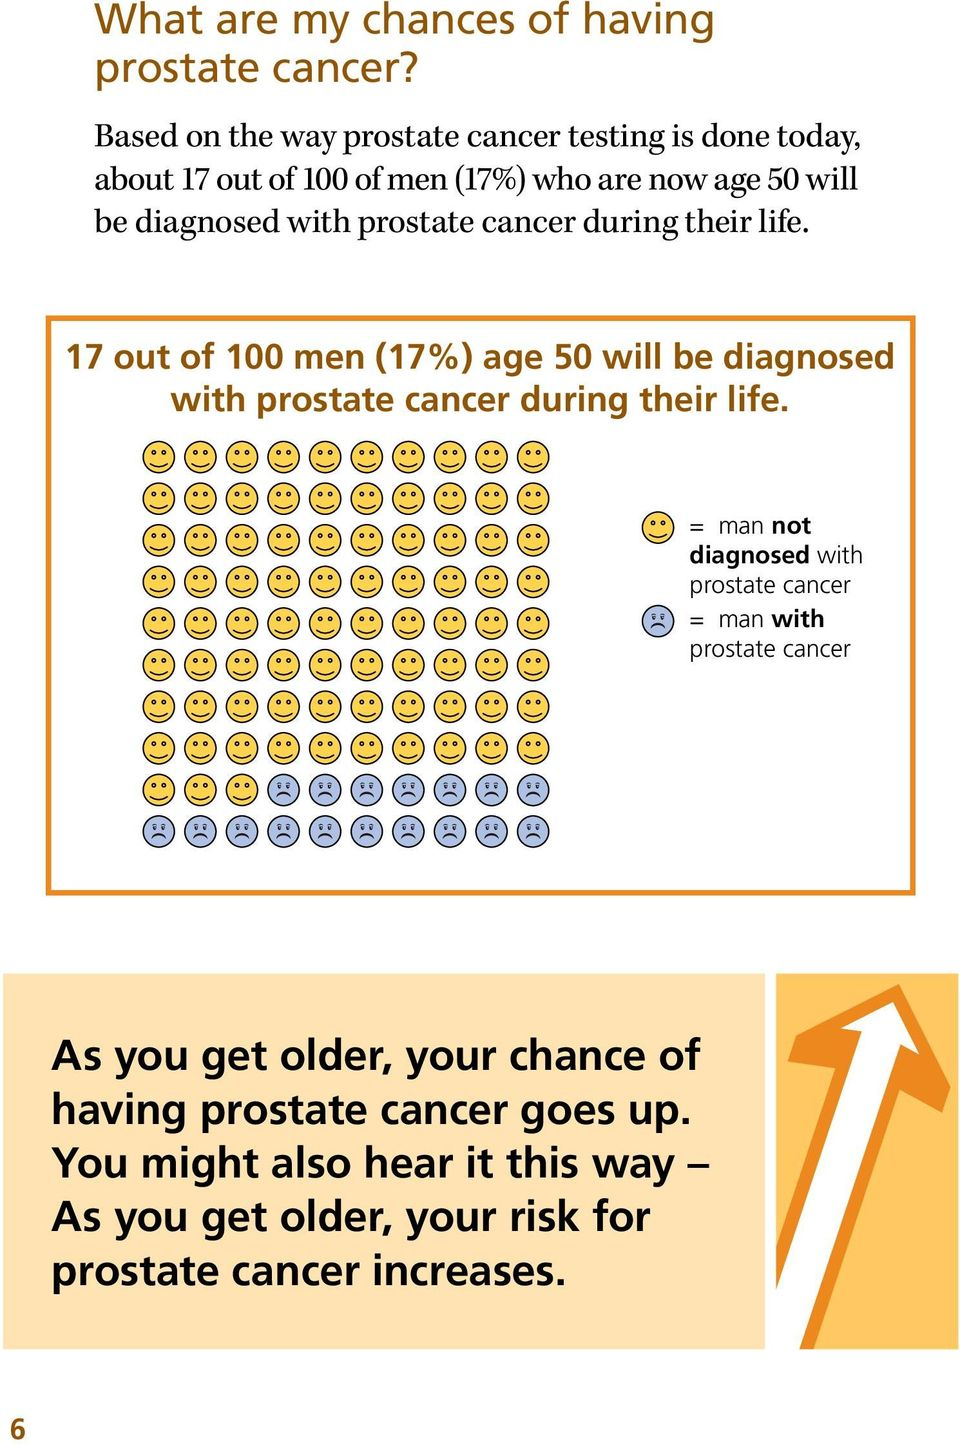 prostate cancer during their life. 17 out of 100 men (17%) age 50 will be diagnosed with prostate cancer during their life.